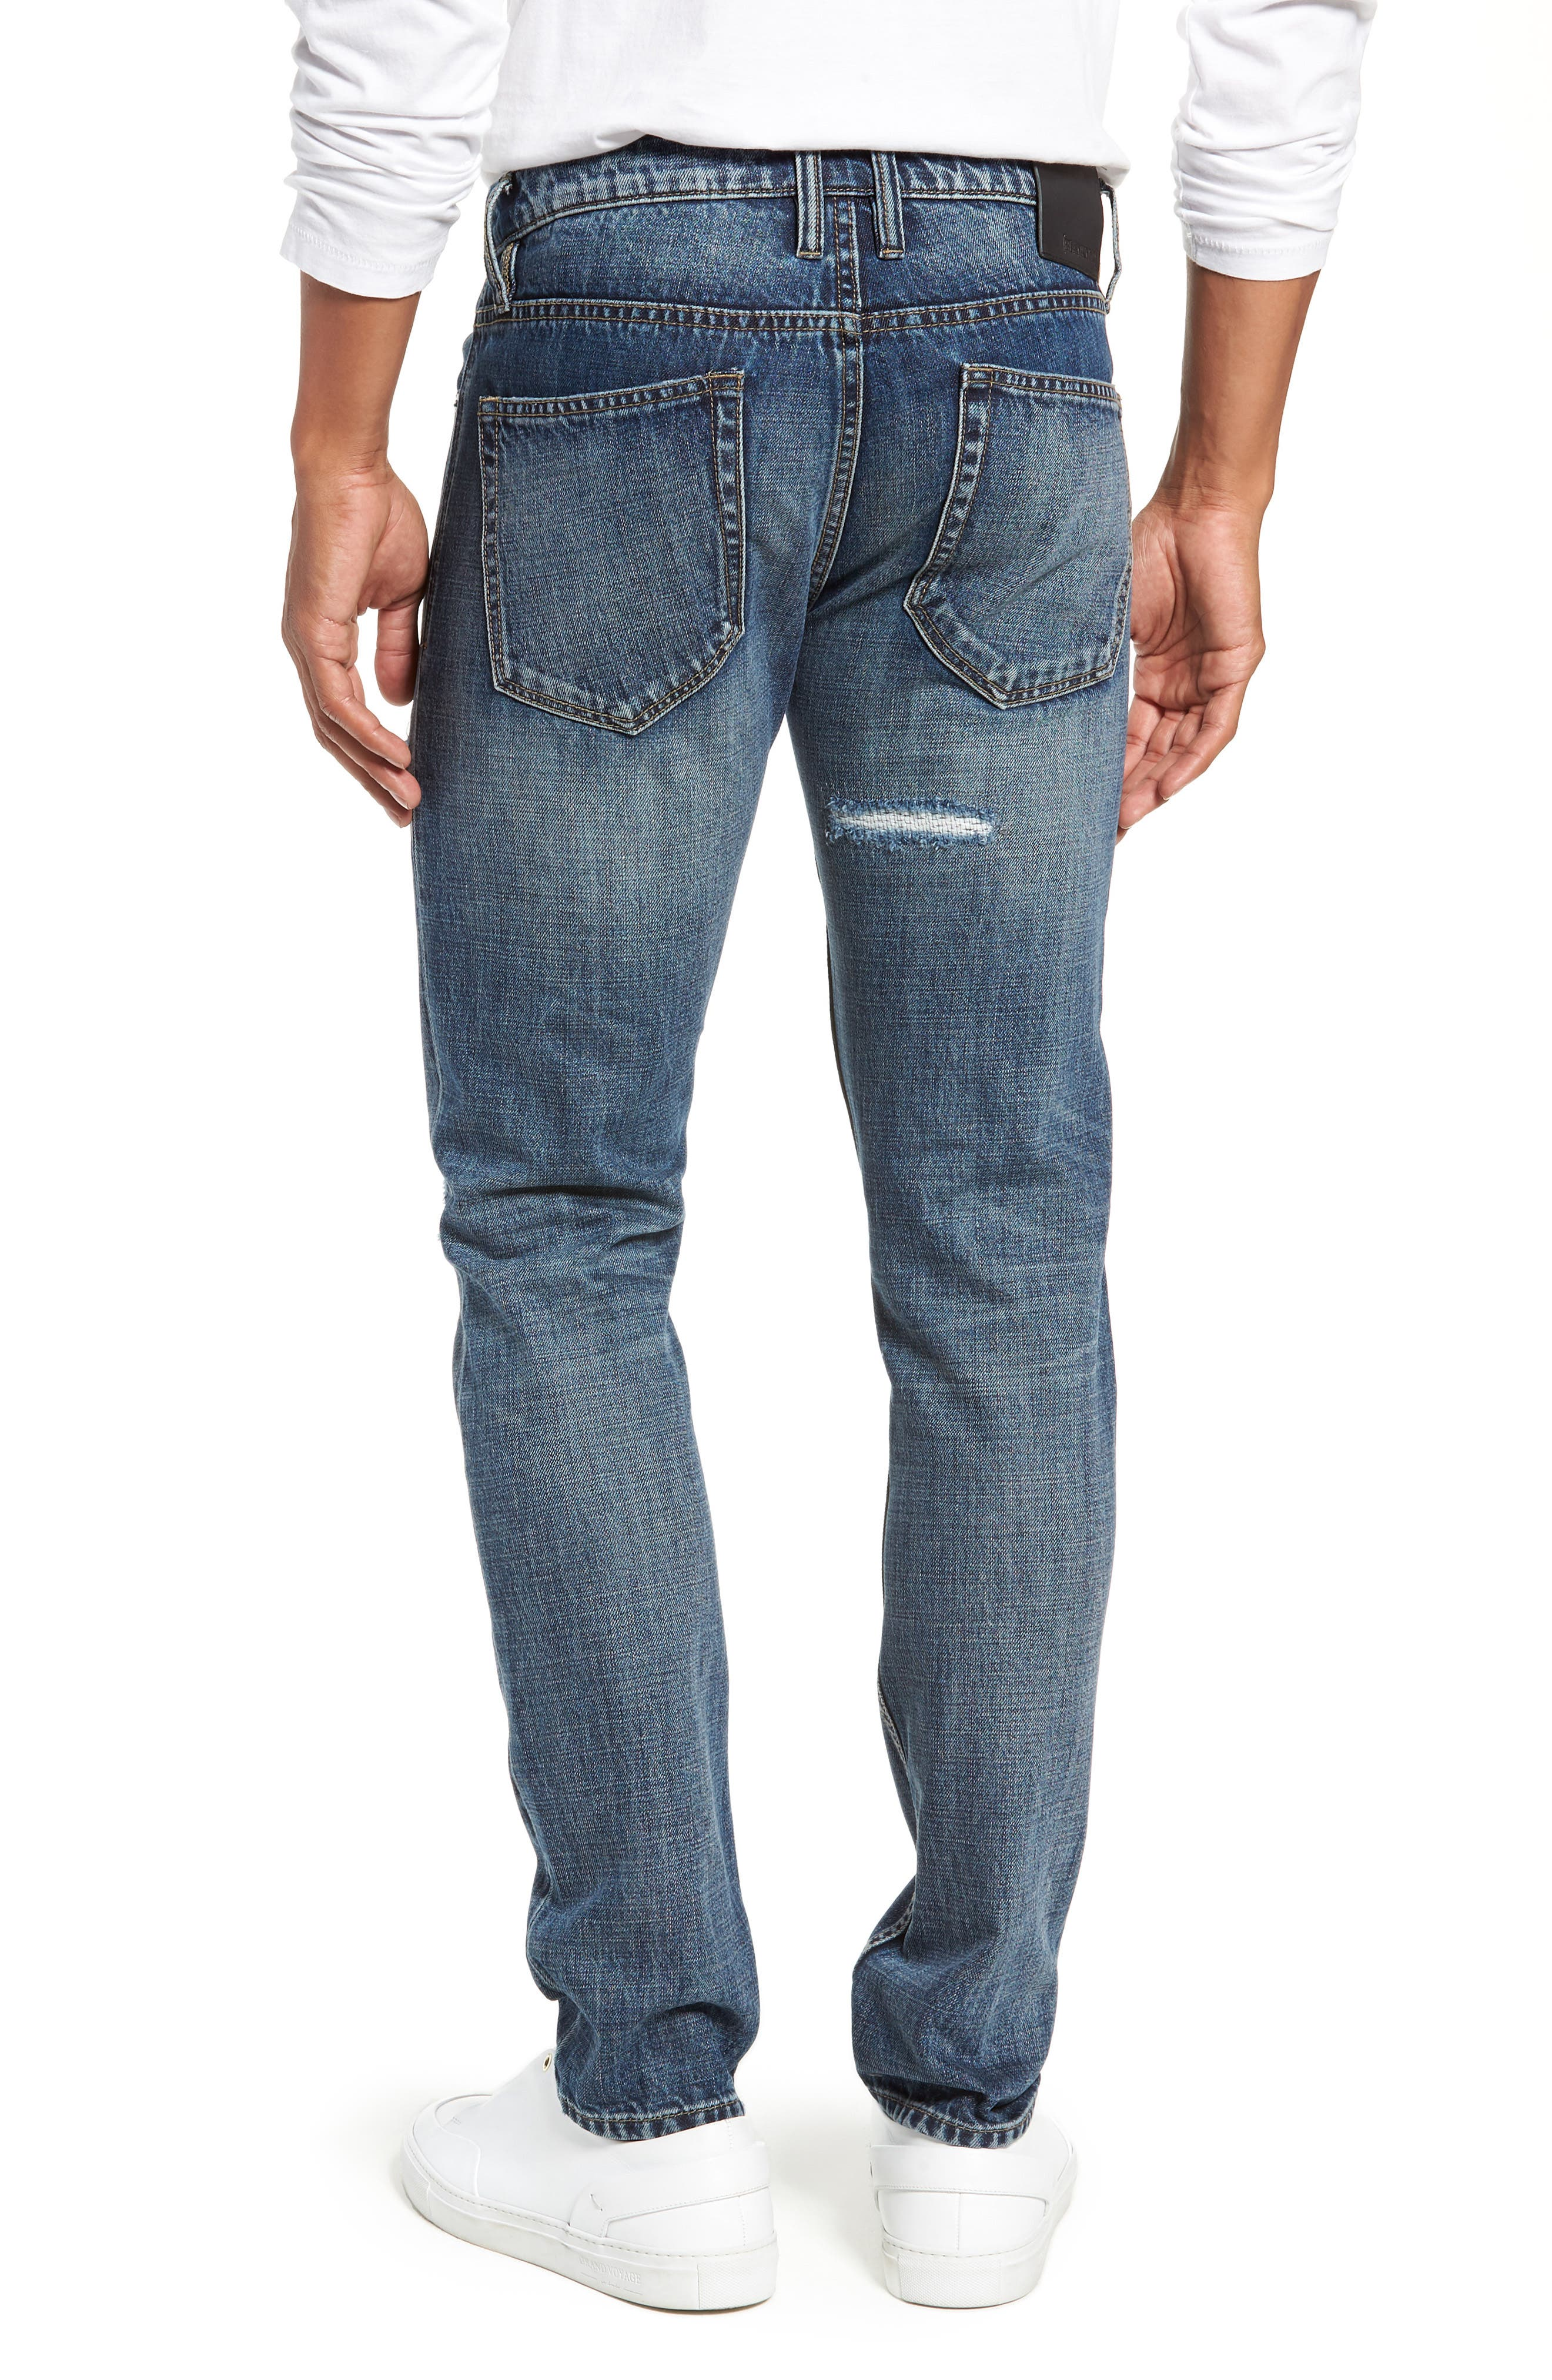 Wooster Slim Fit Distressed Selvedge Jeans,                             Alternate thumbnail 2, color,                             PERMISSIBLE HOT